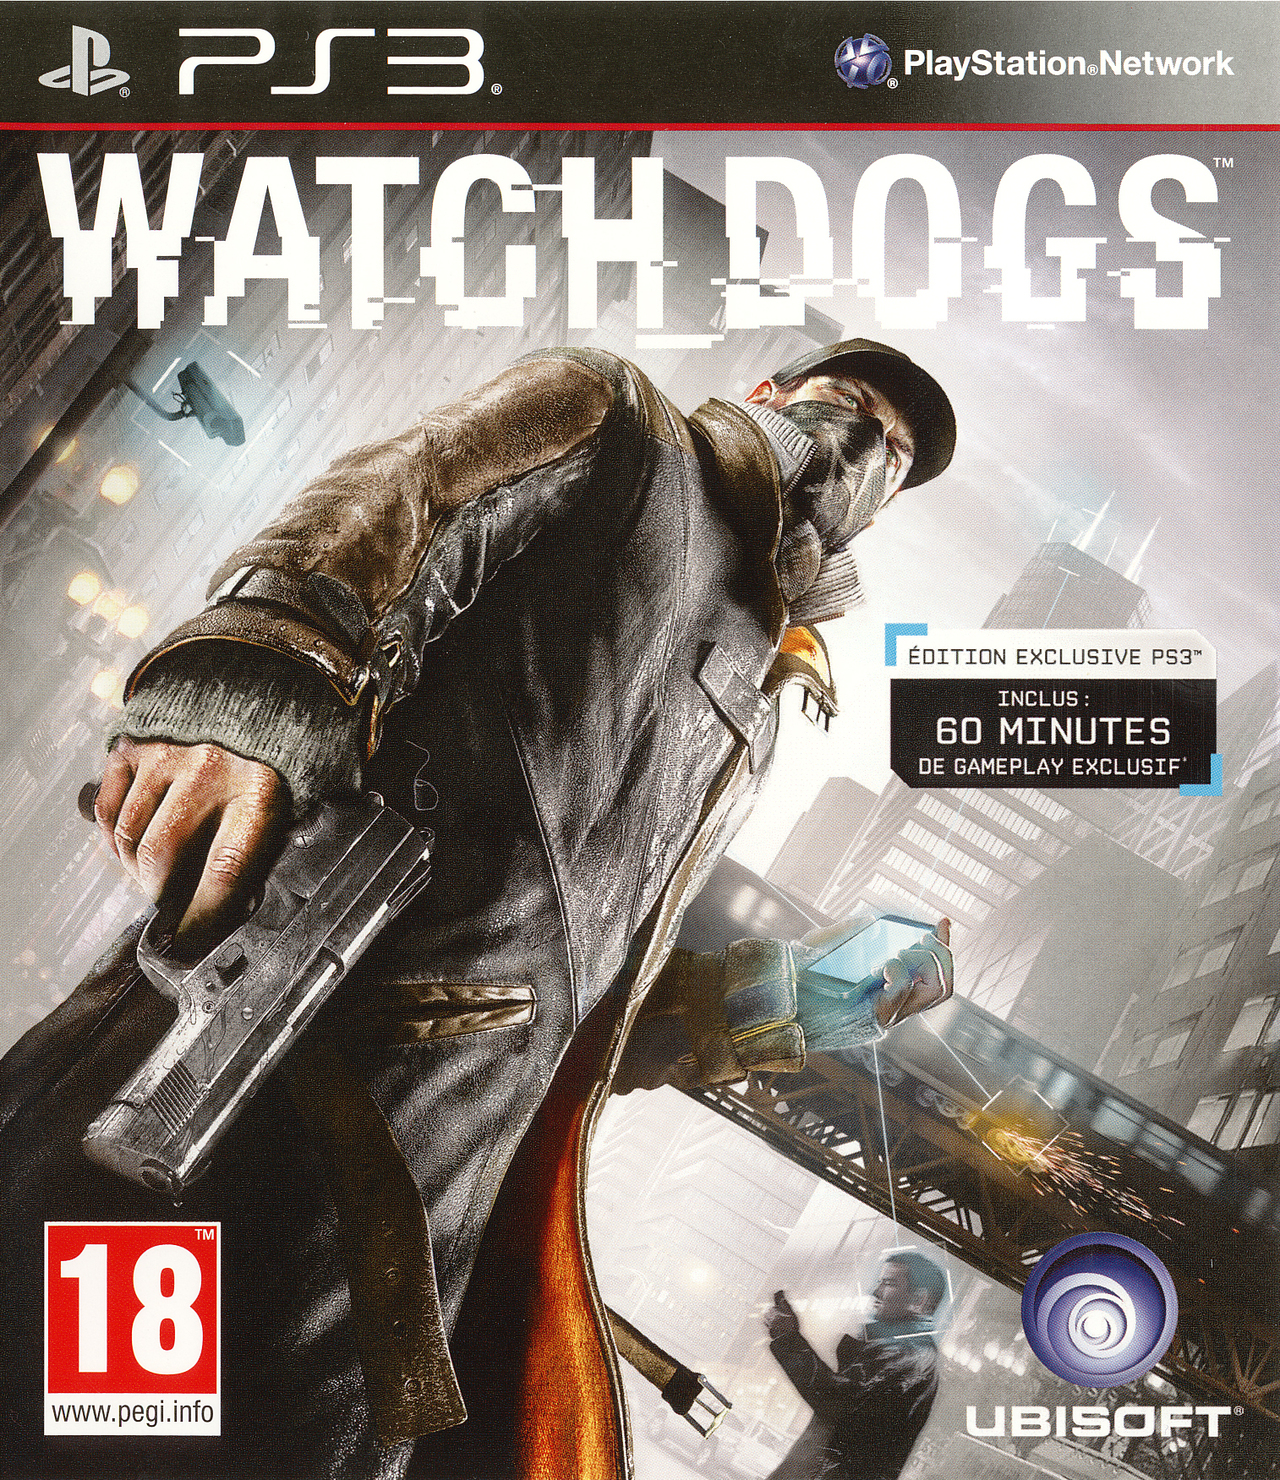 Watch Dogs Store